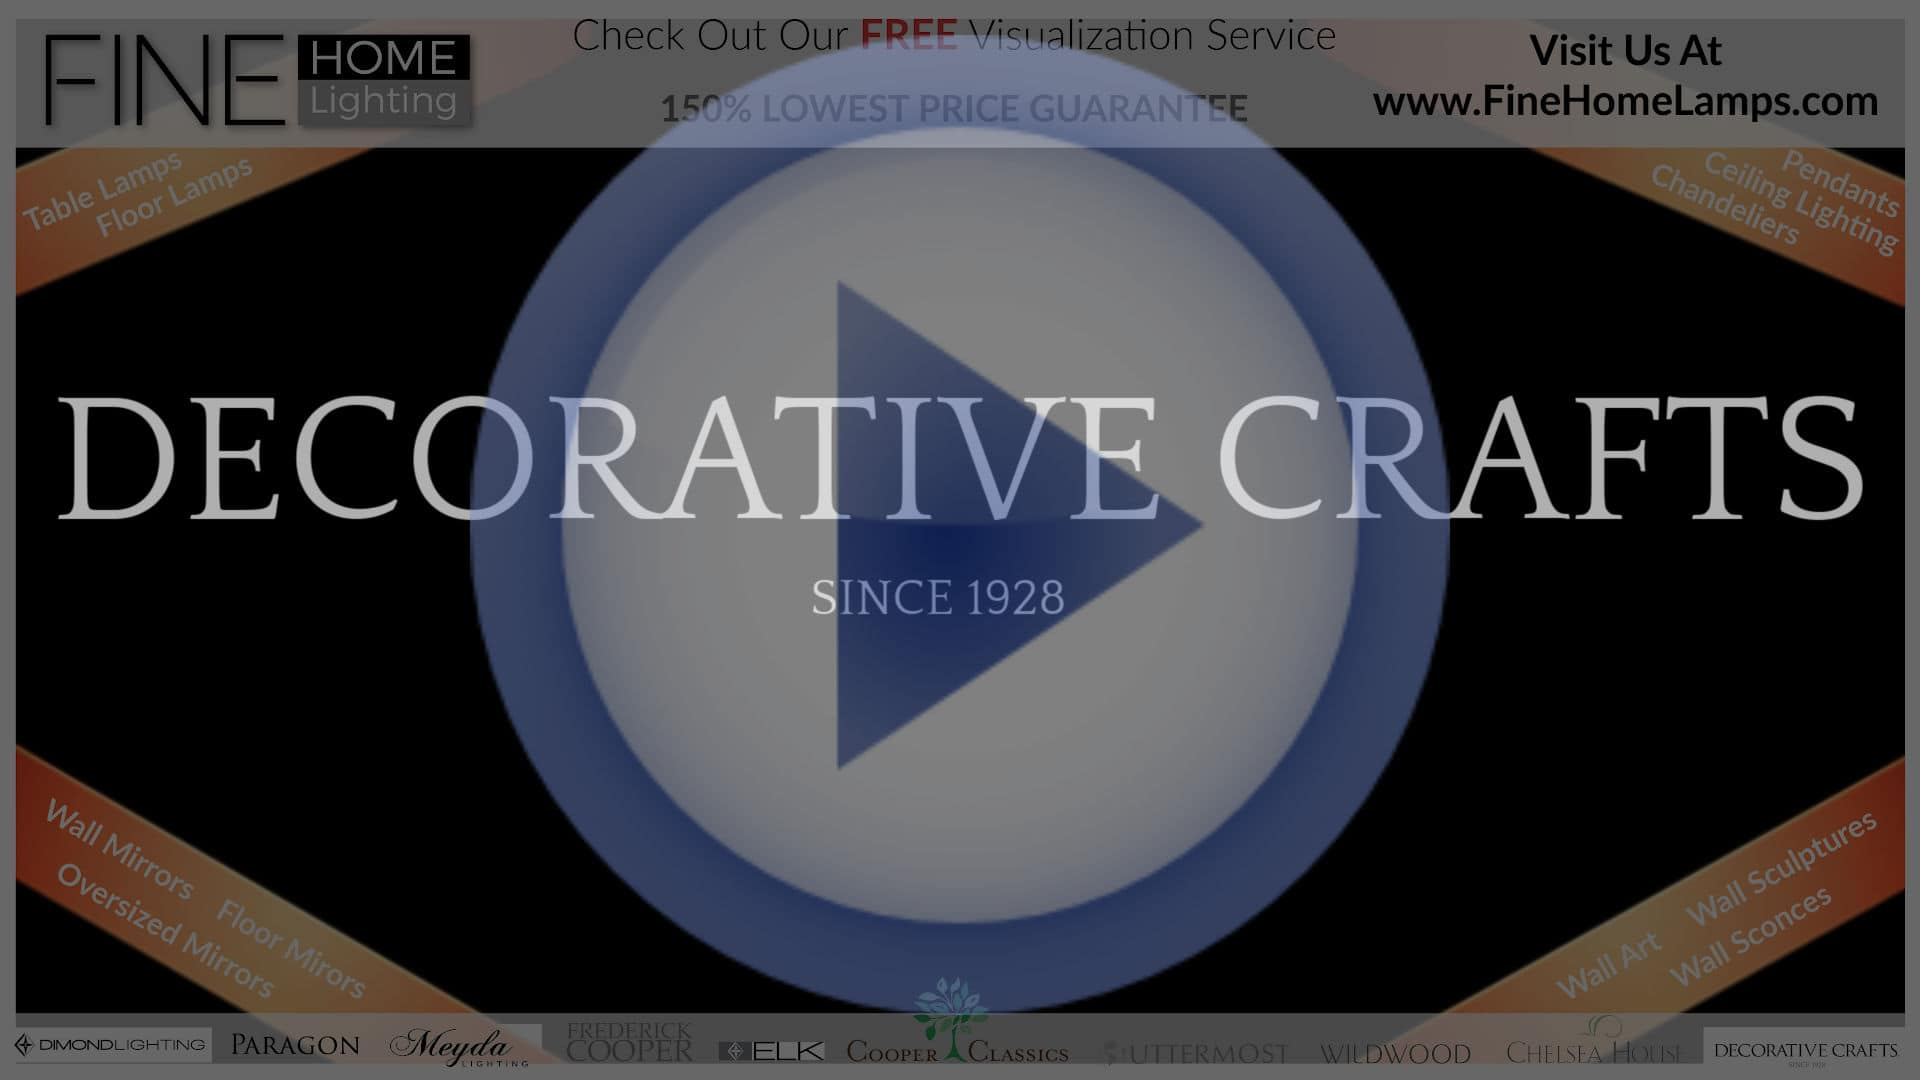 DECORATIVE-CRAFTS-PREVIEW-Thanks-for-watching-this-video-Get-an-additional-15-percent-off-your-next-purchase-Use-Coupon-Code-VIDEO-1